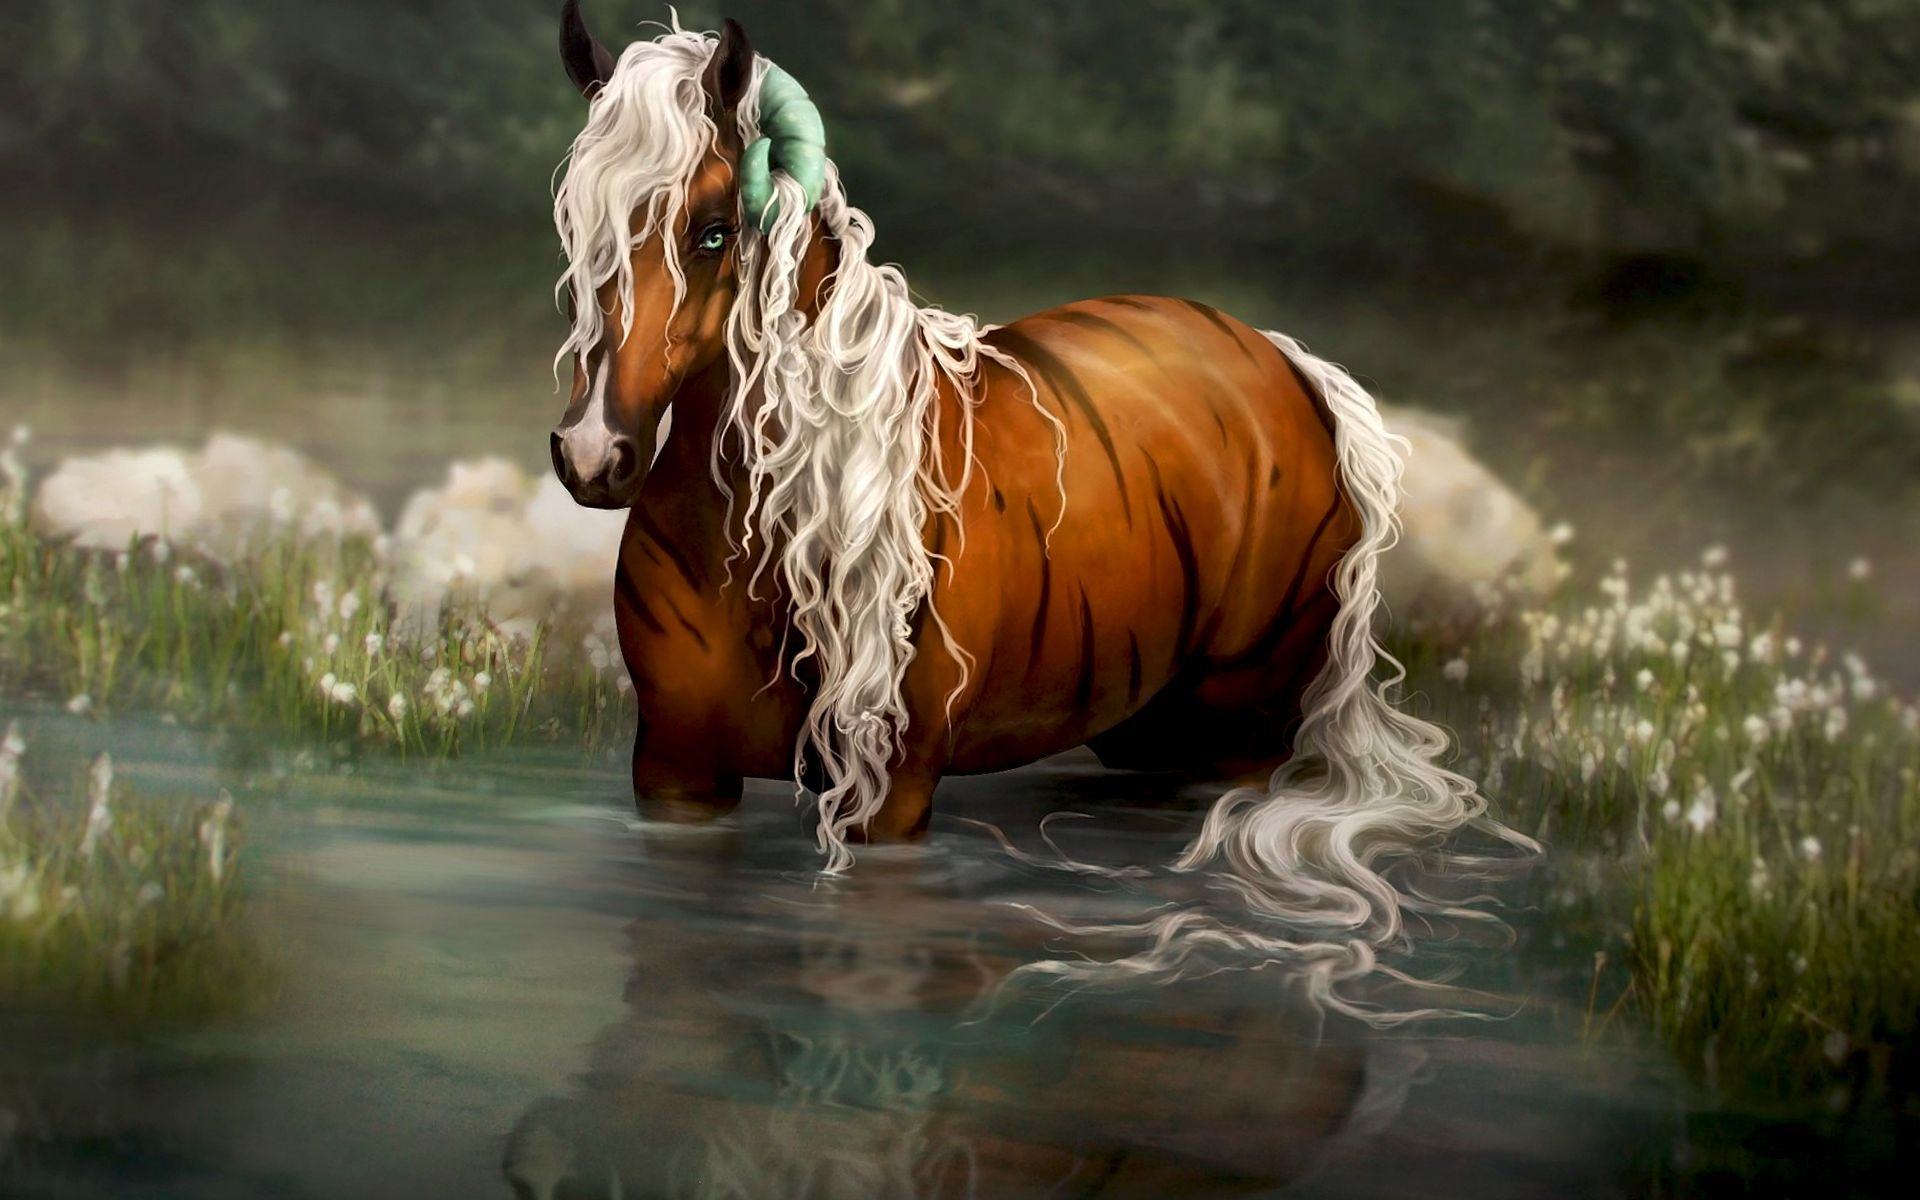 46533 download wallpaper Animals, Horses, Pictures screensavers and pictures for free